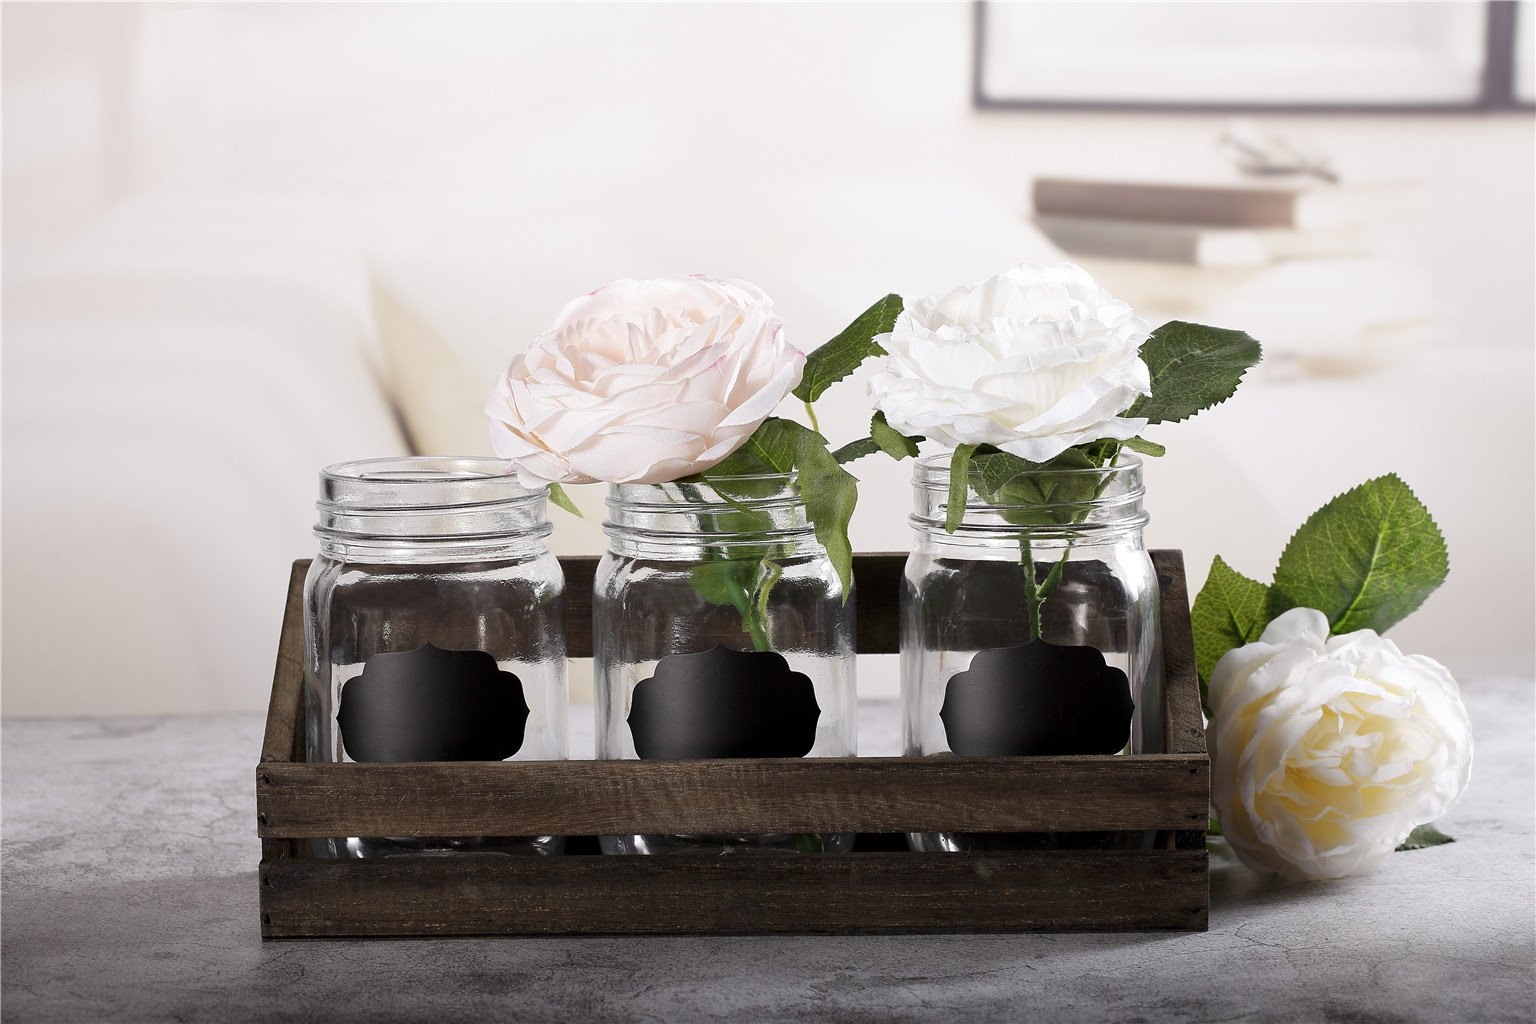 V-More Bud Vase with Chicken Wire Basket V-More Rustic Glass Mason Jar with Chalkboard Label and Wooden Tray 6.5-inch Tall For Home Decor Wedding Party Celebration by V-More Bud Vase with Chicken Wire Basket (Image #9)